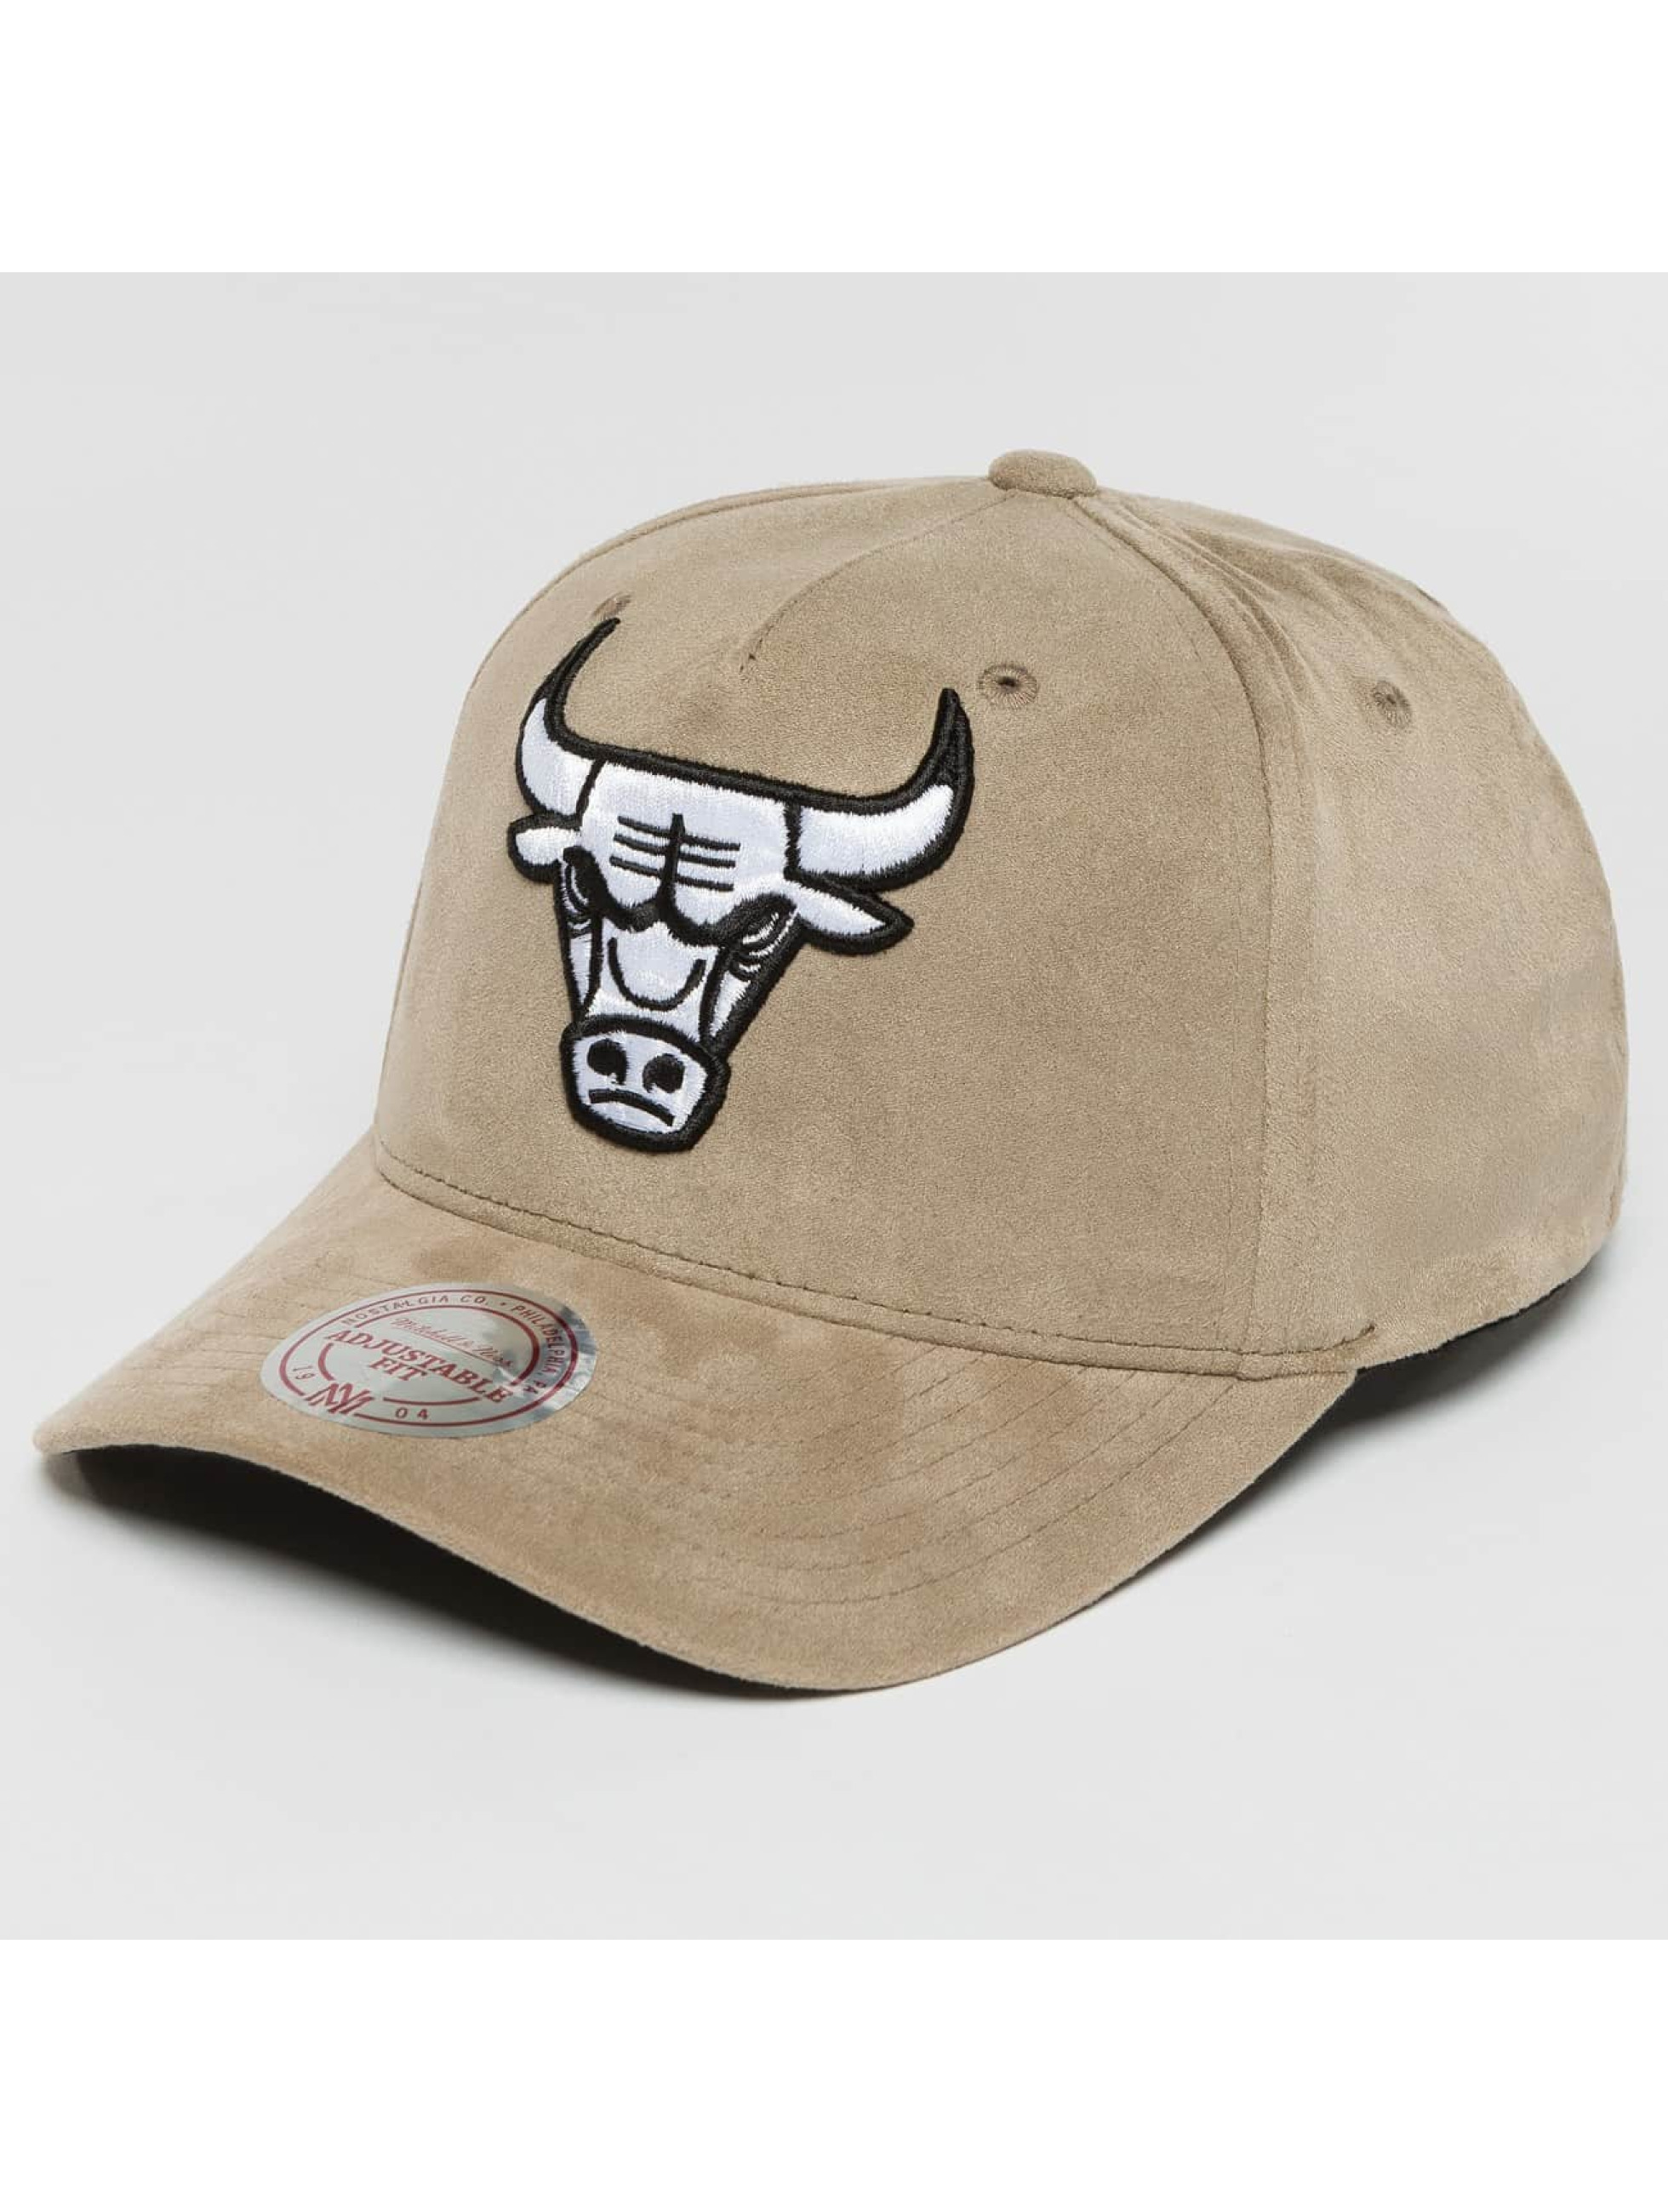 Mitchell & Ness Кепка с застёжкой 110 Curved NBA Chicago Bulls Suede серый